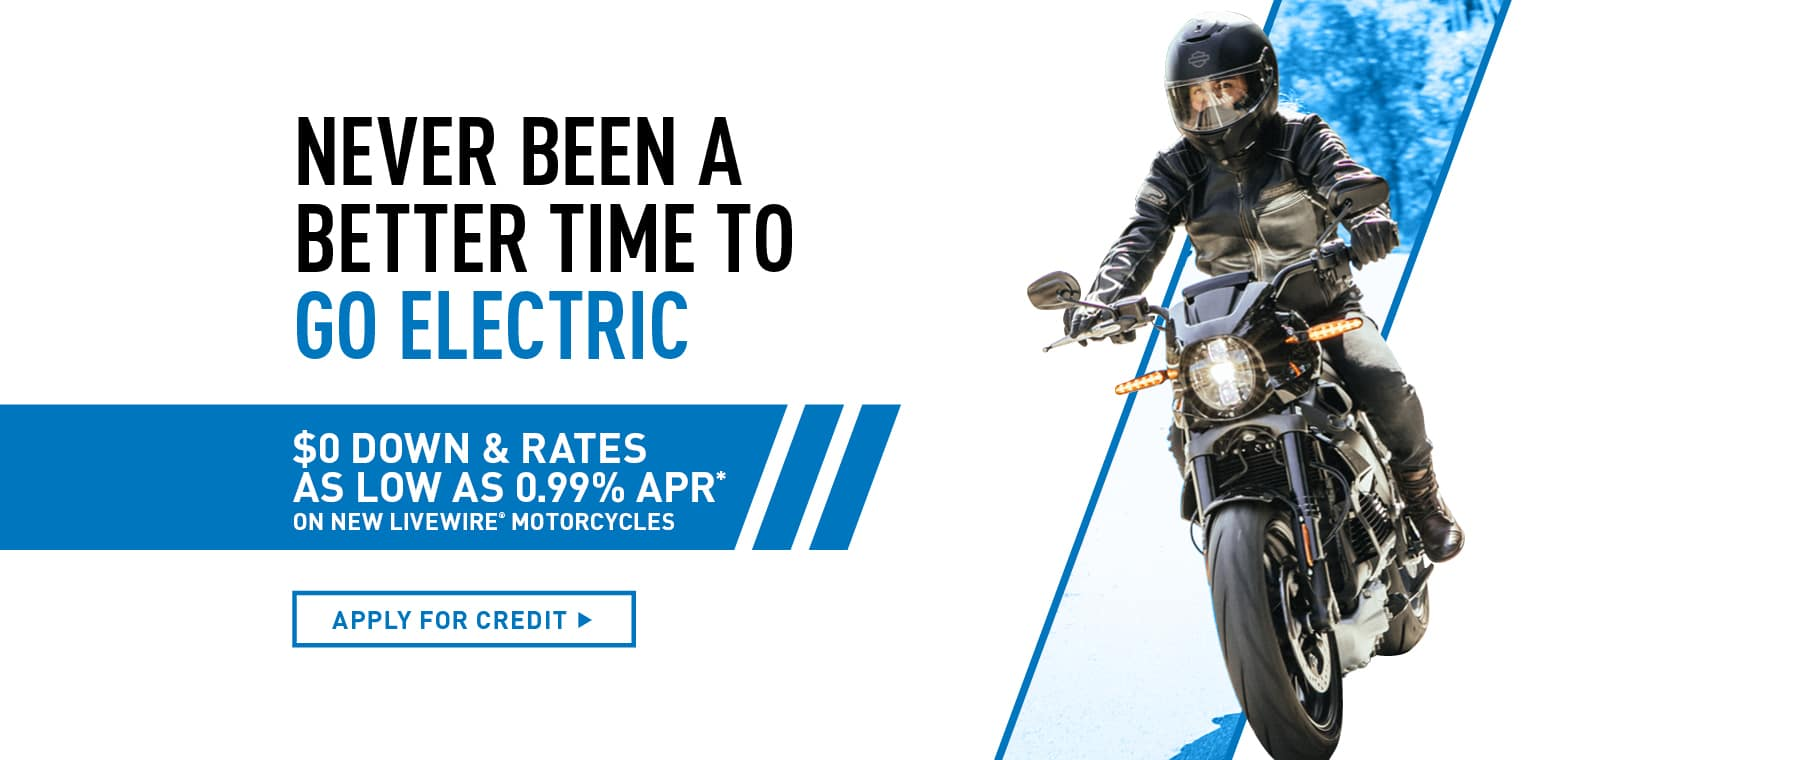 2020 $0 down-0.99_ apr livewire motorcycle offer 1800×760 web banner